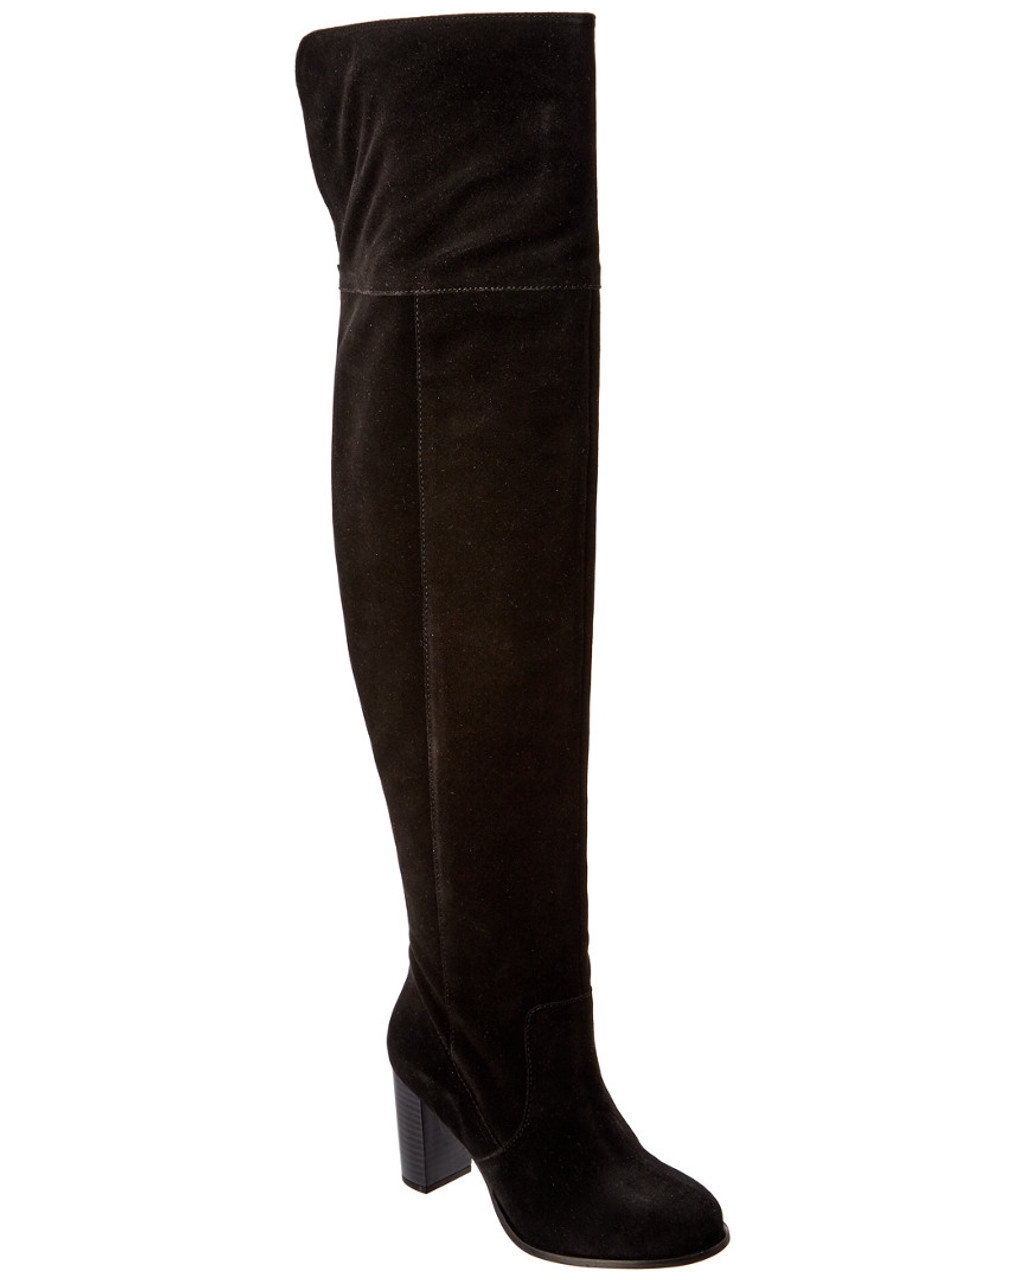 0a7f7bad29 Seychelles Trixie Suede Over-The-Knee Boot~1311498086 - Boston Store